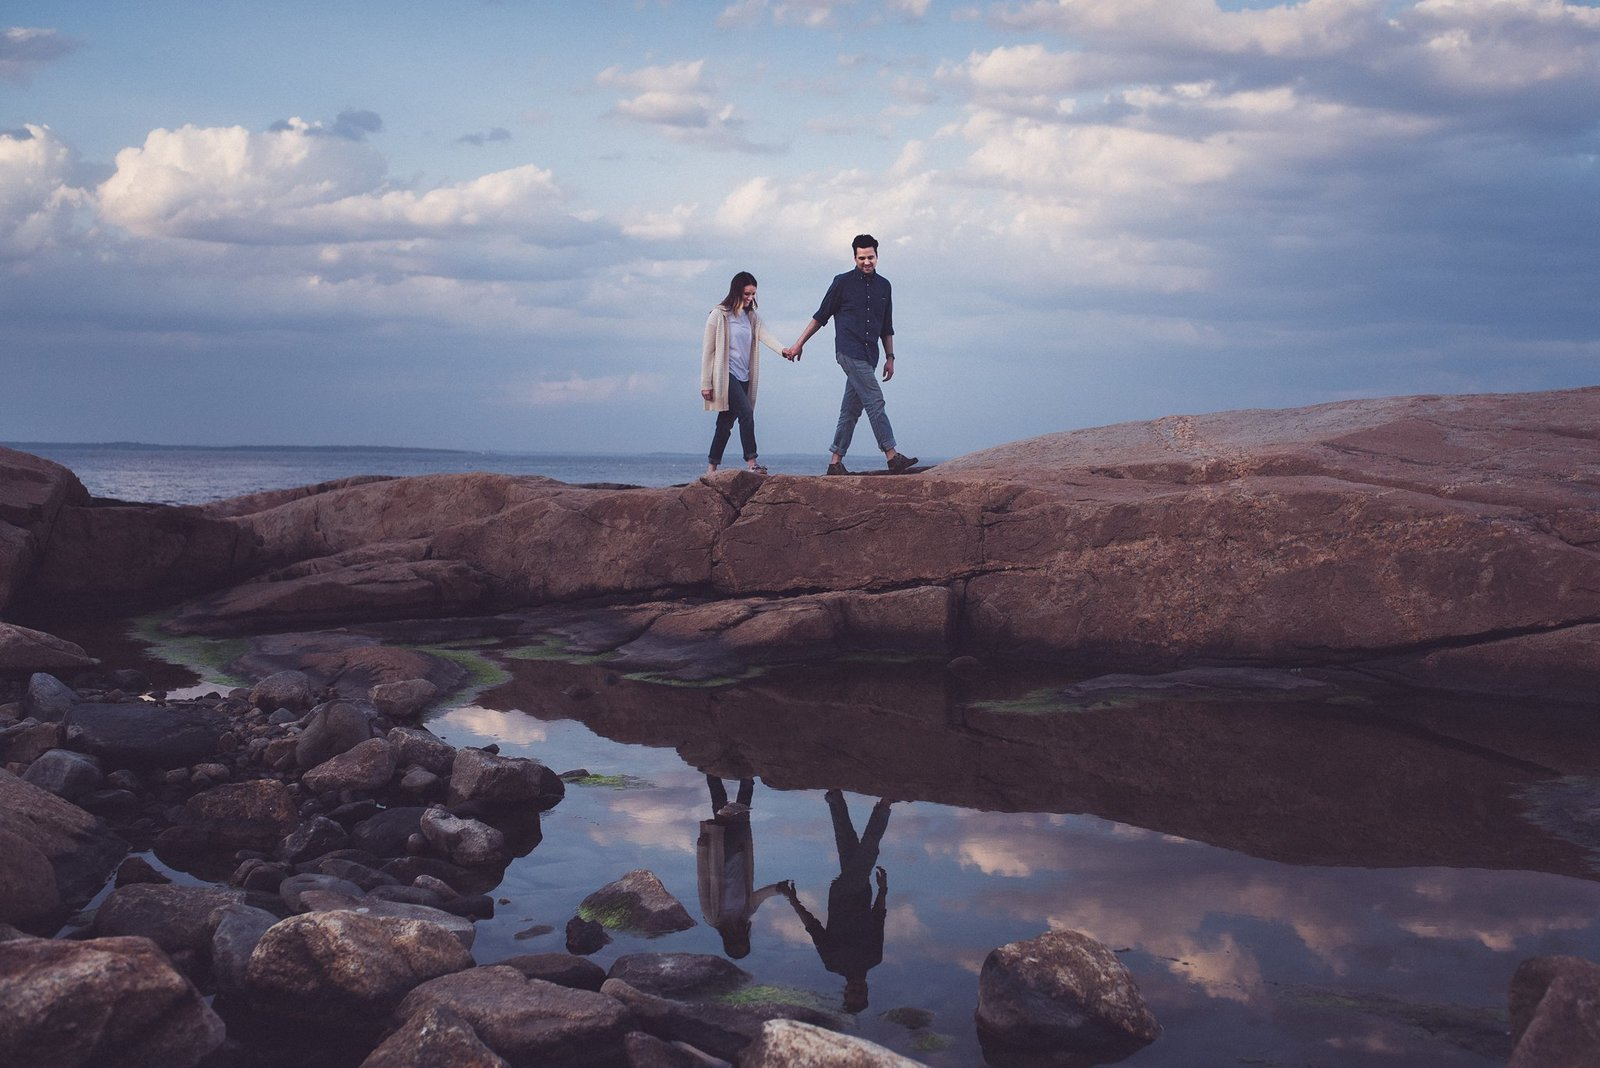 engagement photos at hazard rock in rhode island